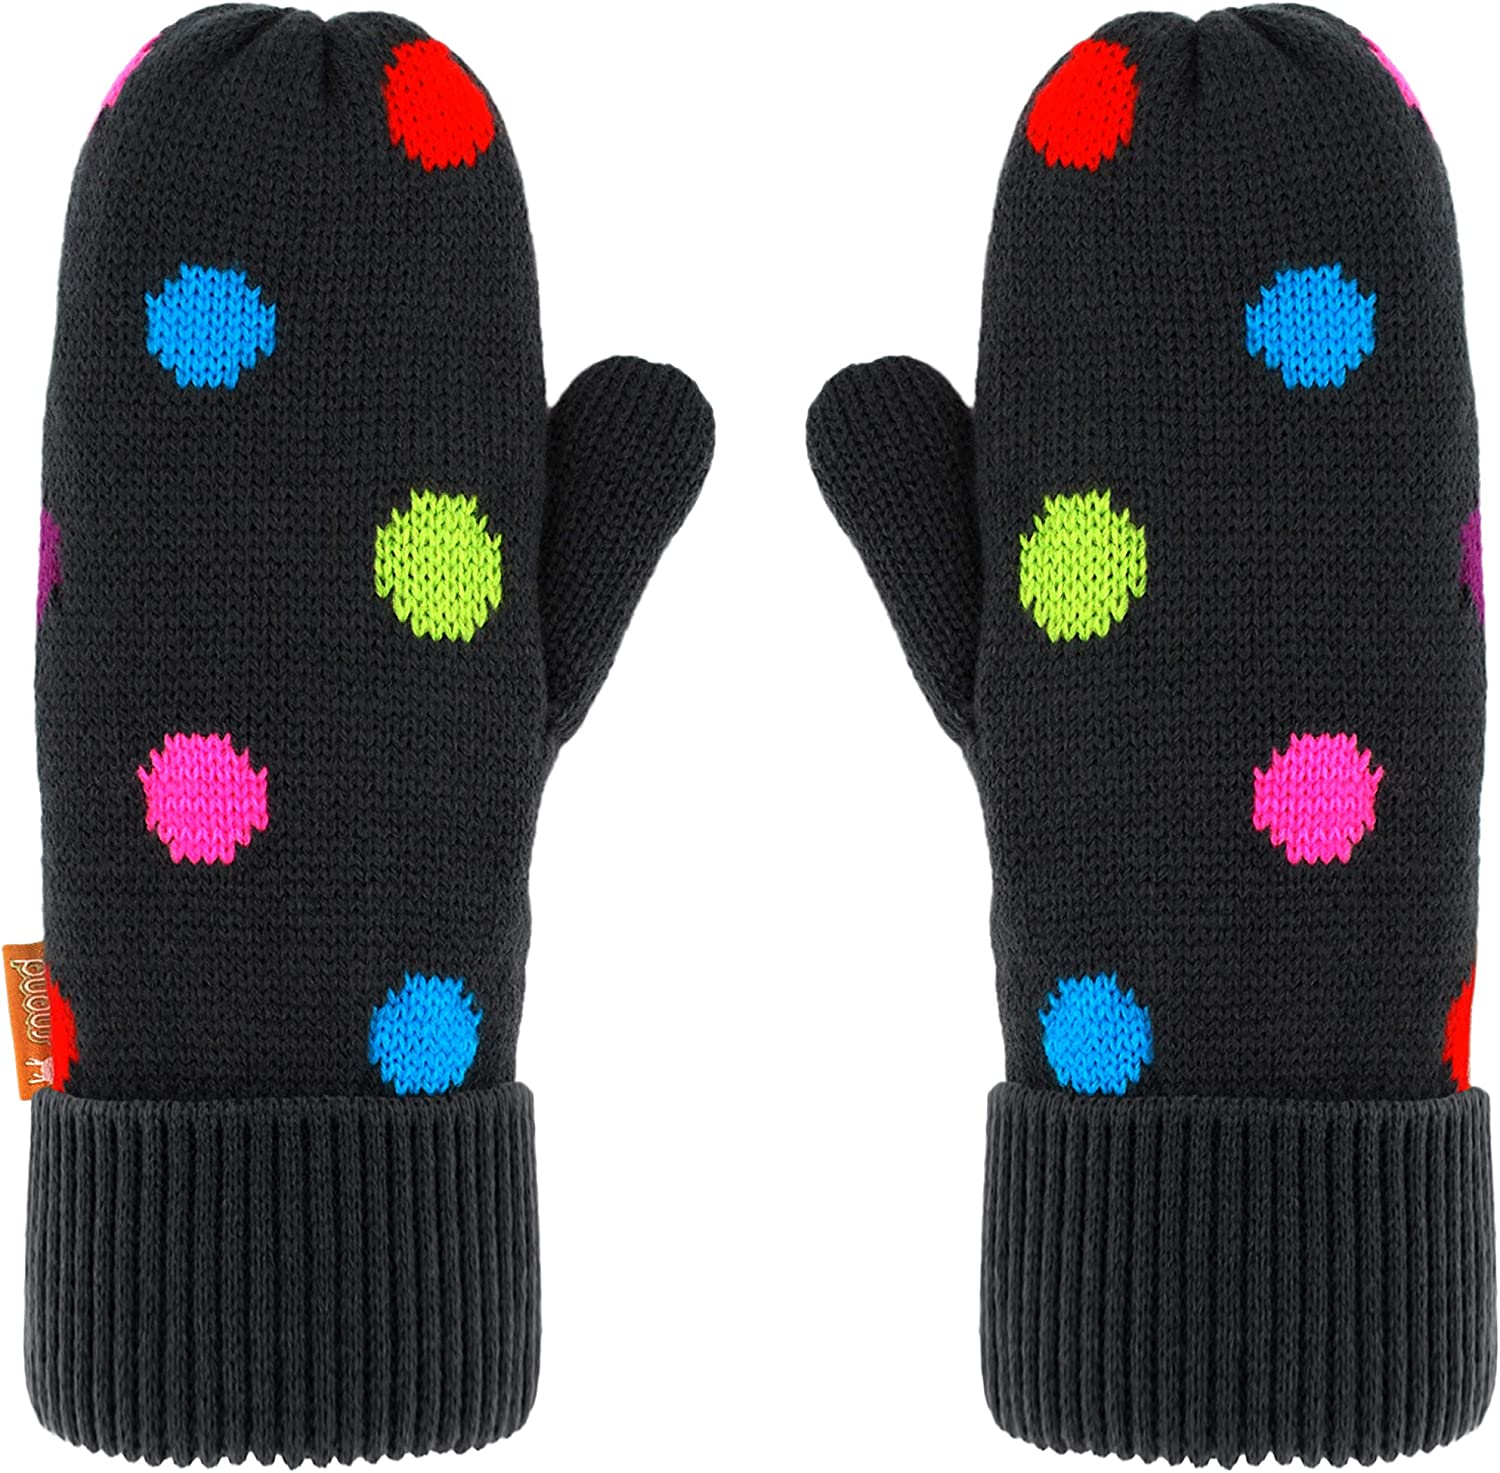 Pudus Kids Winter Knit Mittens, Fuzzy Sherpa-Lined Warm Gloves for Boys & Girls